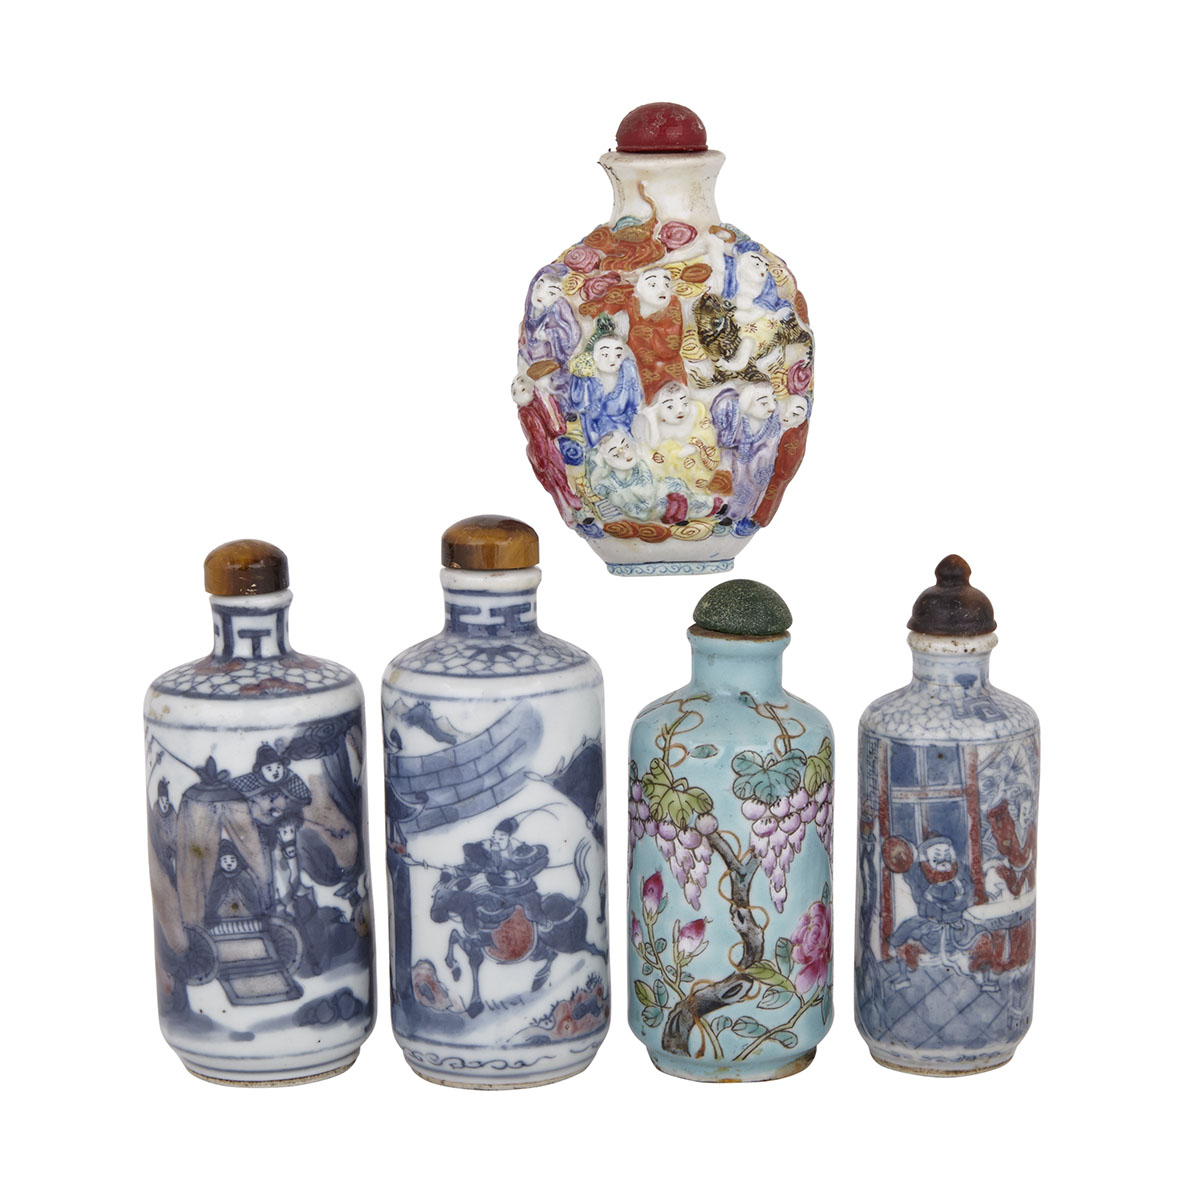 Group of Five Porcelain Snuff Bottles, 19th/20th Century